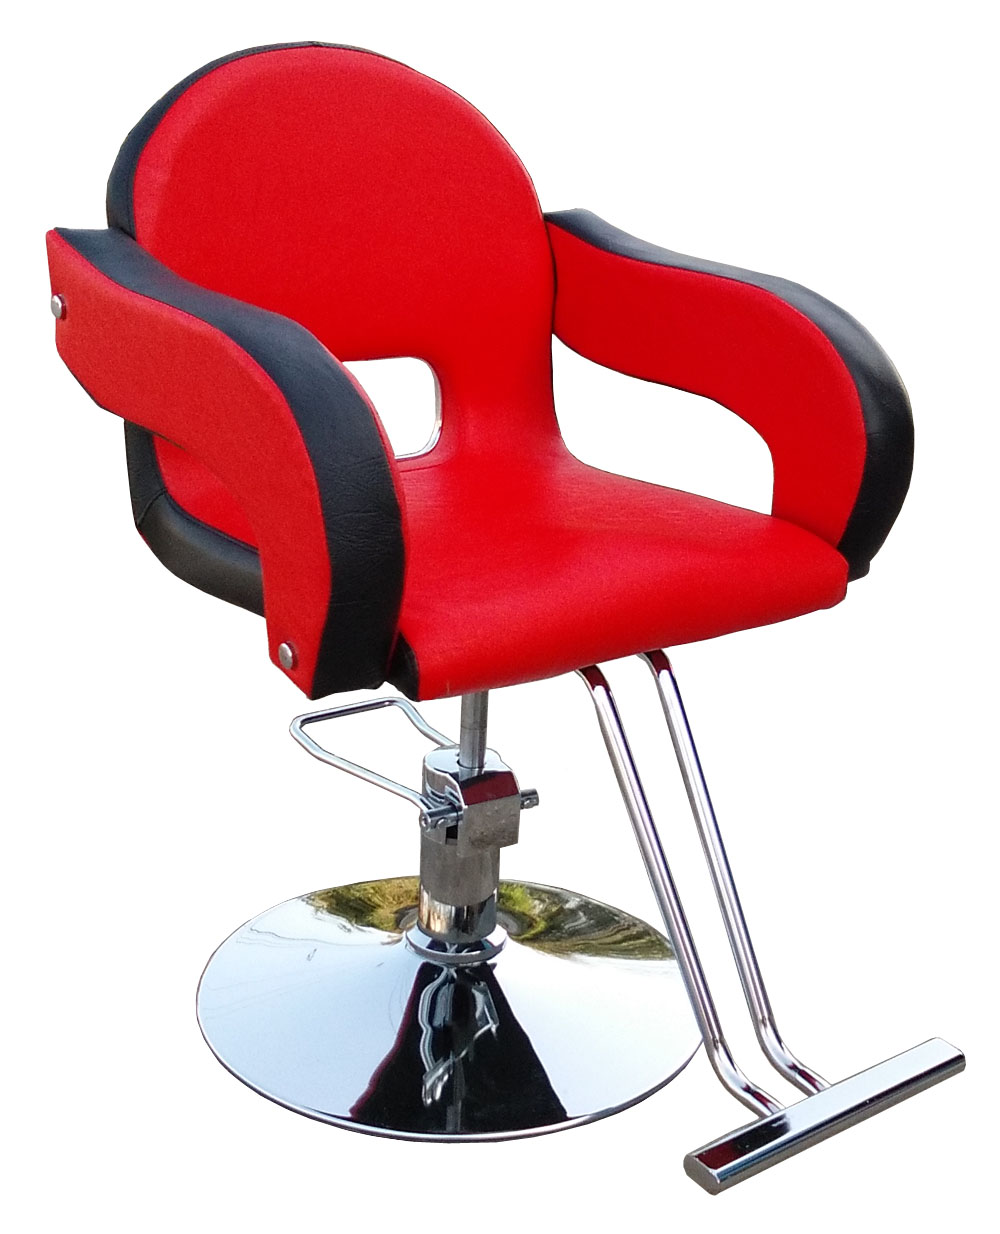 Us 331 5 15 Off Hair Salons Fashion Hair Salon Chair Cutting Beauty Care Hydraulic Chair Stool Swivel Chair In Barber Chairs From Furniture On